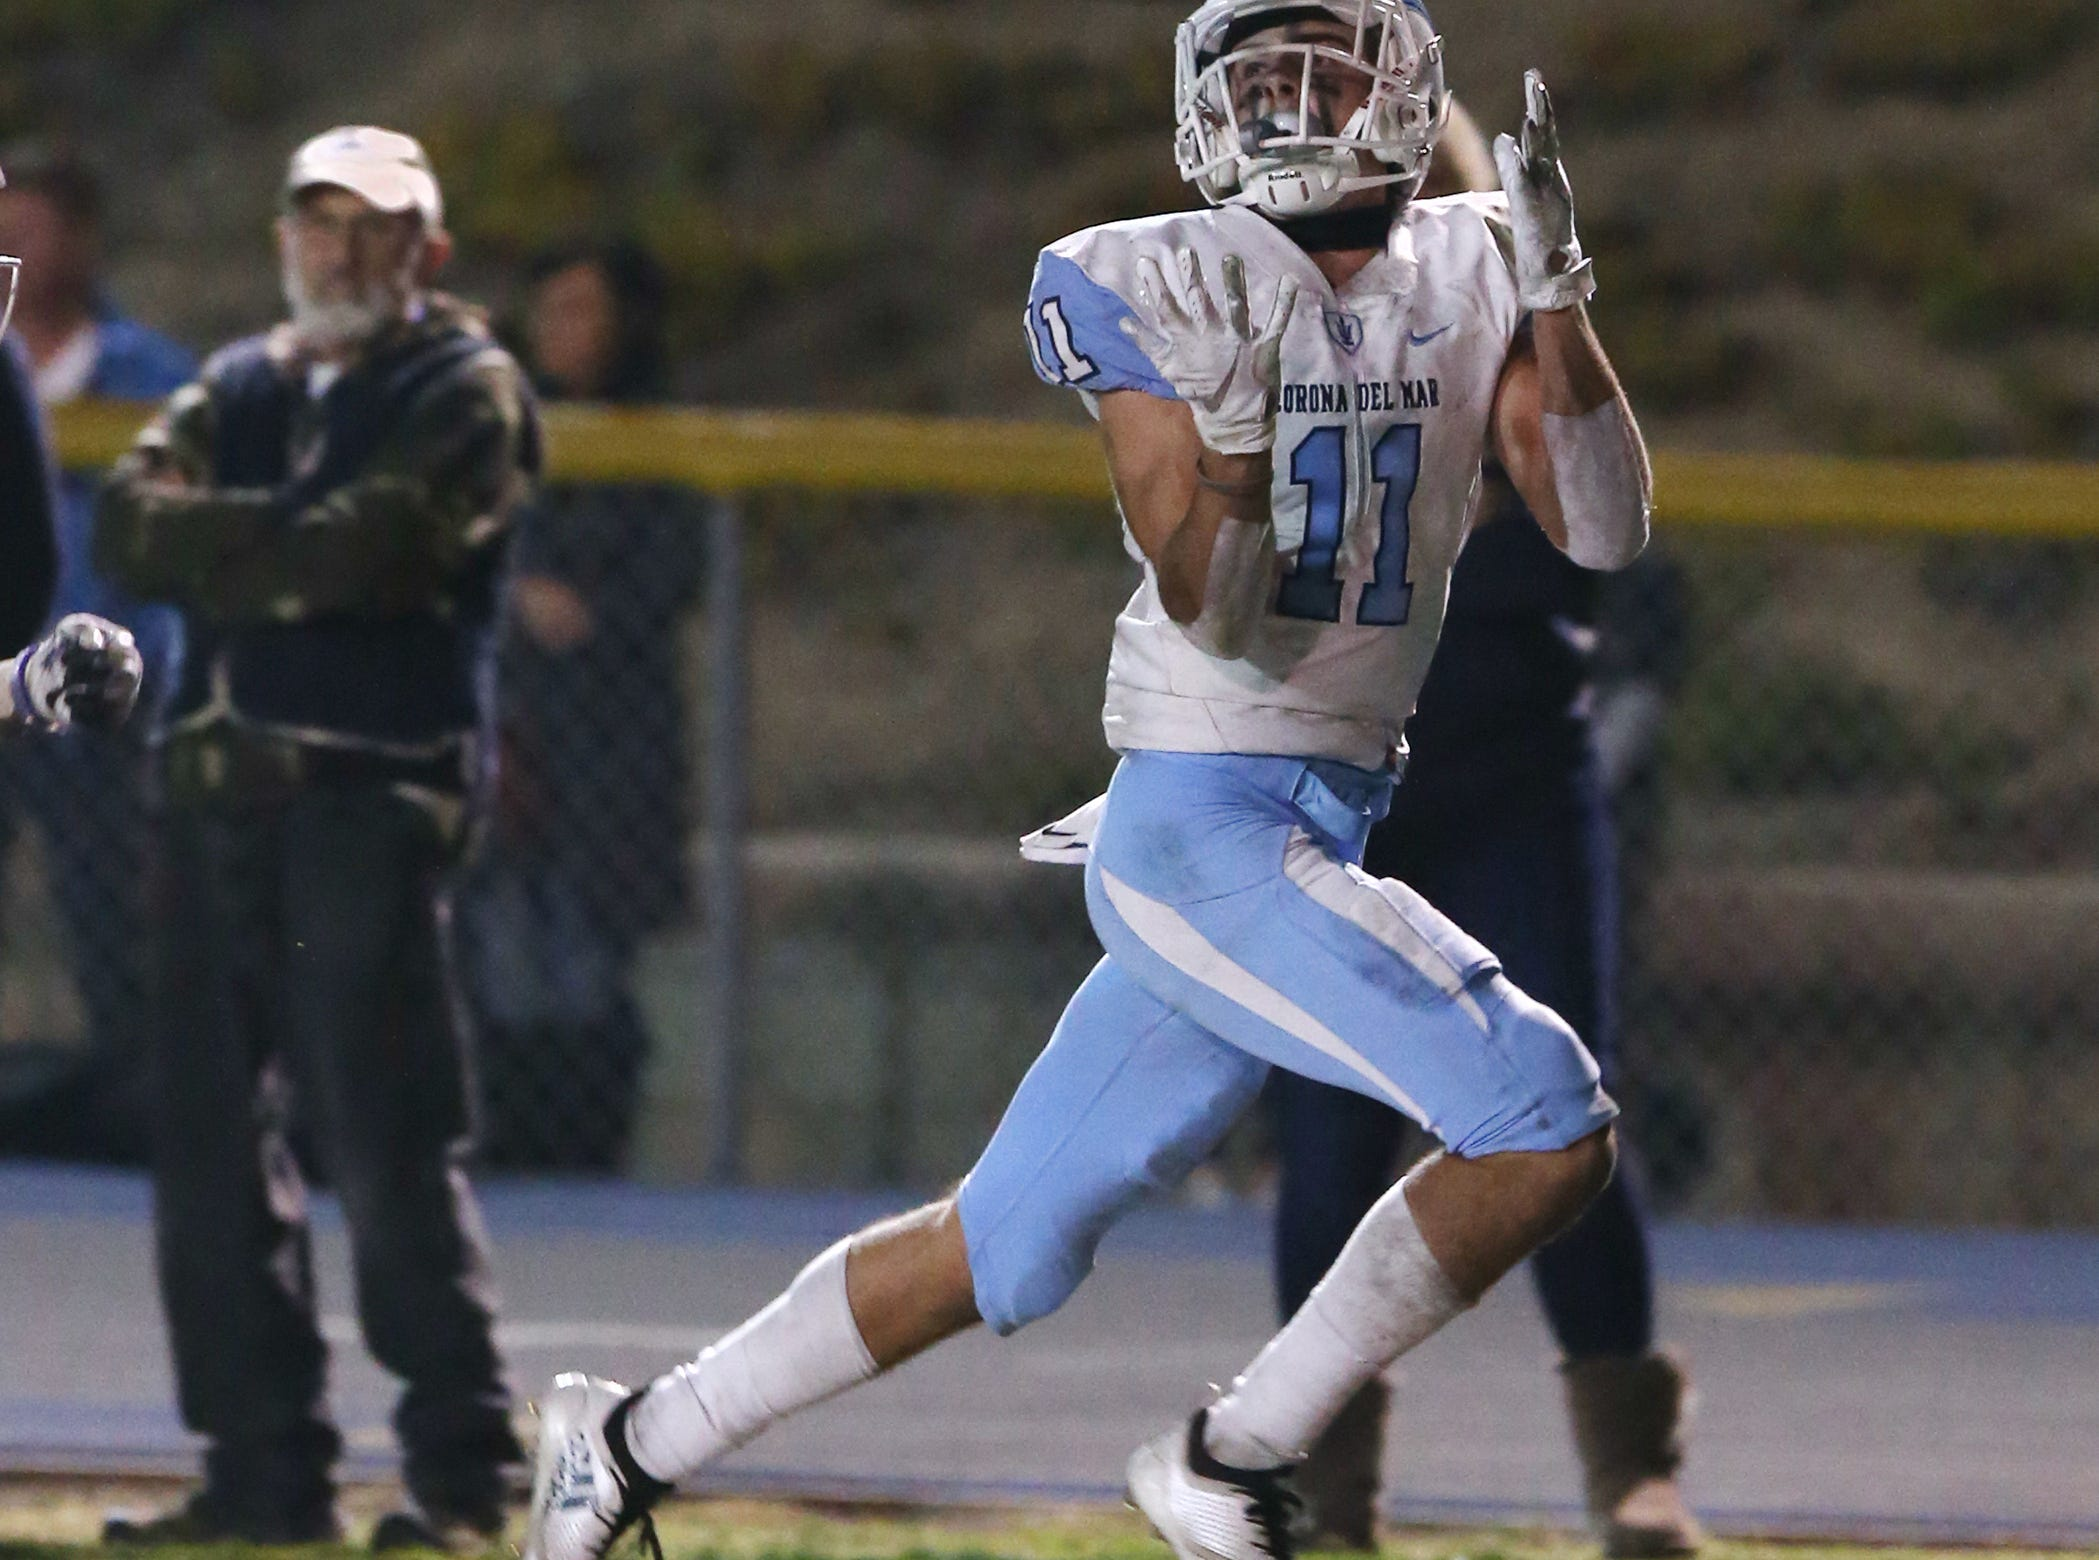 Corona del Mar's Jesse Bradley Schlom makes a touchdown catch against Camarillo during Friday night's playoff game.